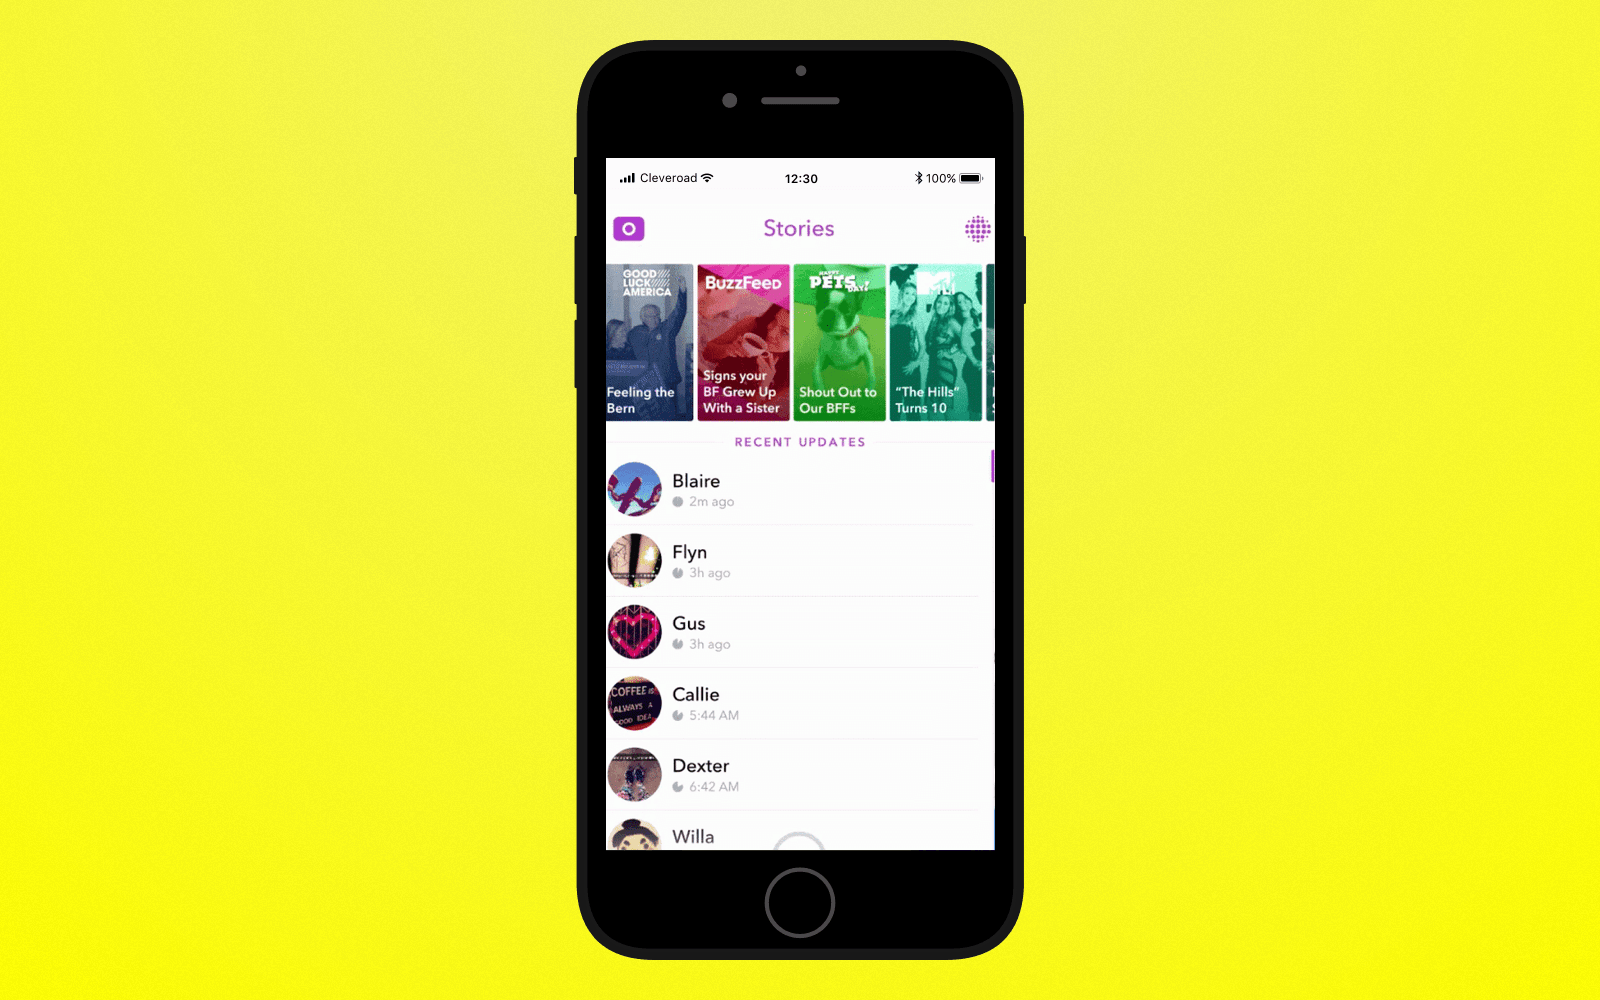 Add story feature to create an app like Snapchat